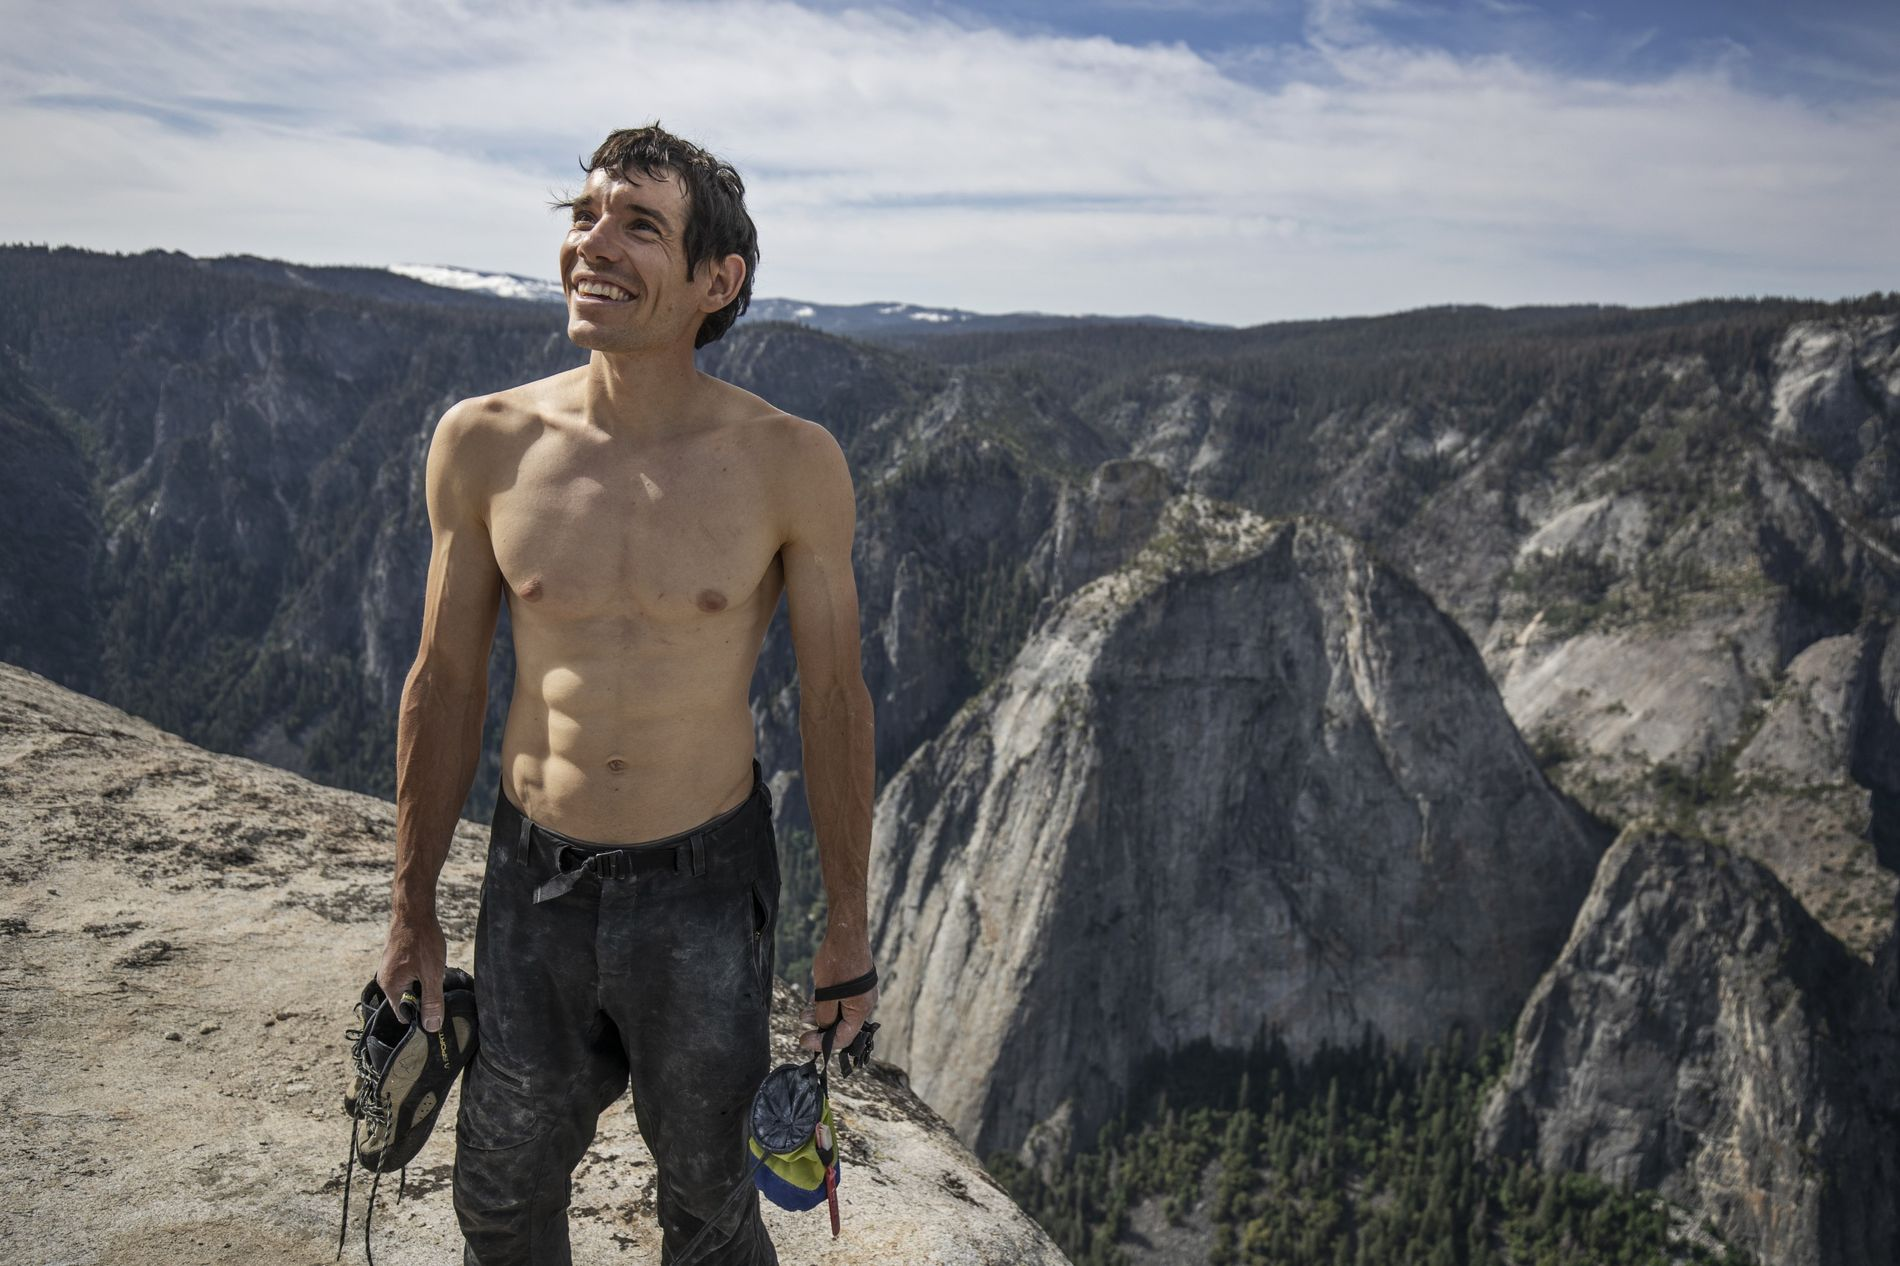 Alex Honnold holds all of his climbing gear atop the summit of El Capitan. He had just became the first person to climb El Capitan without a rope.